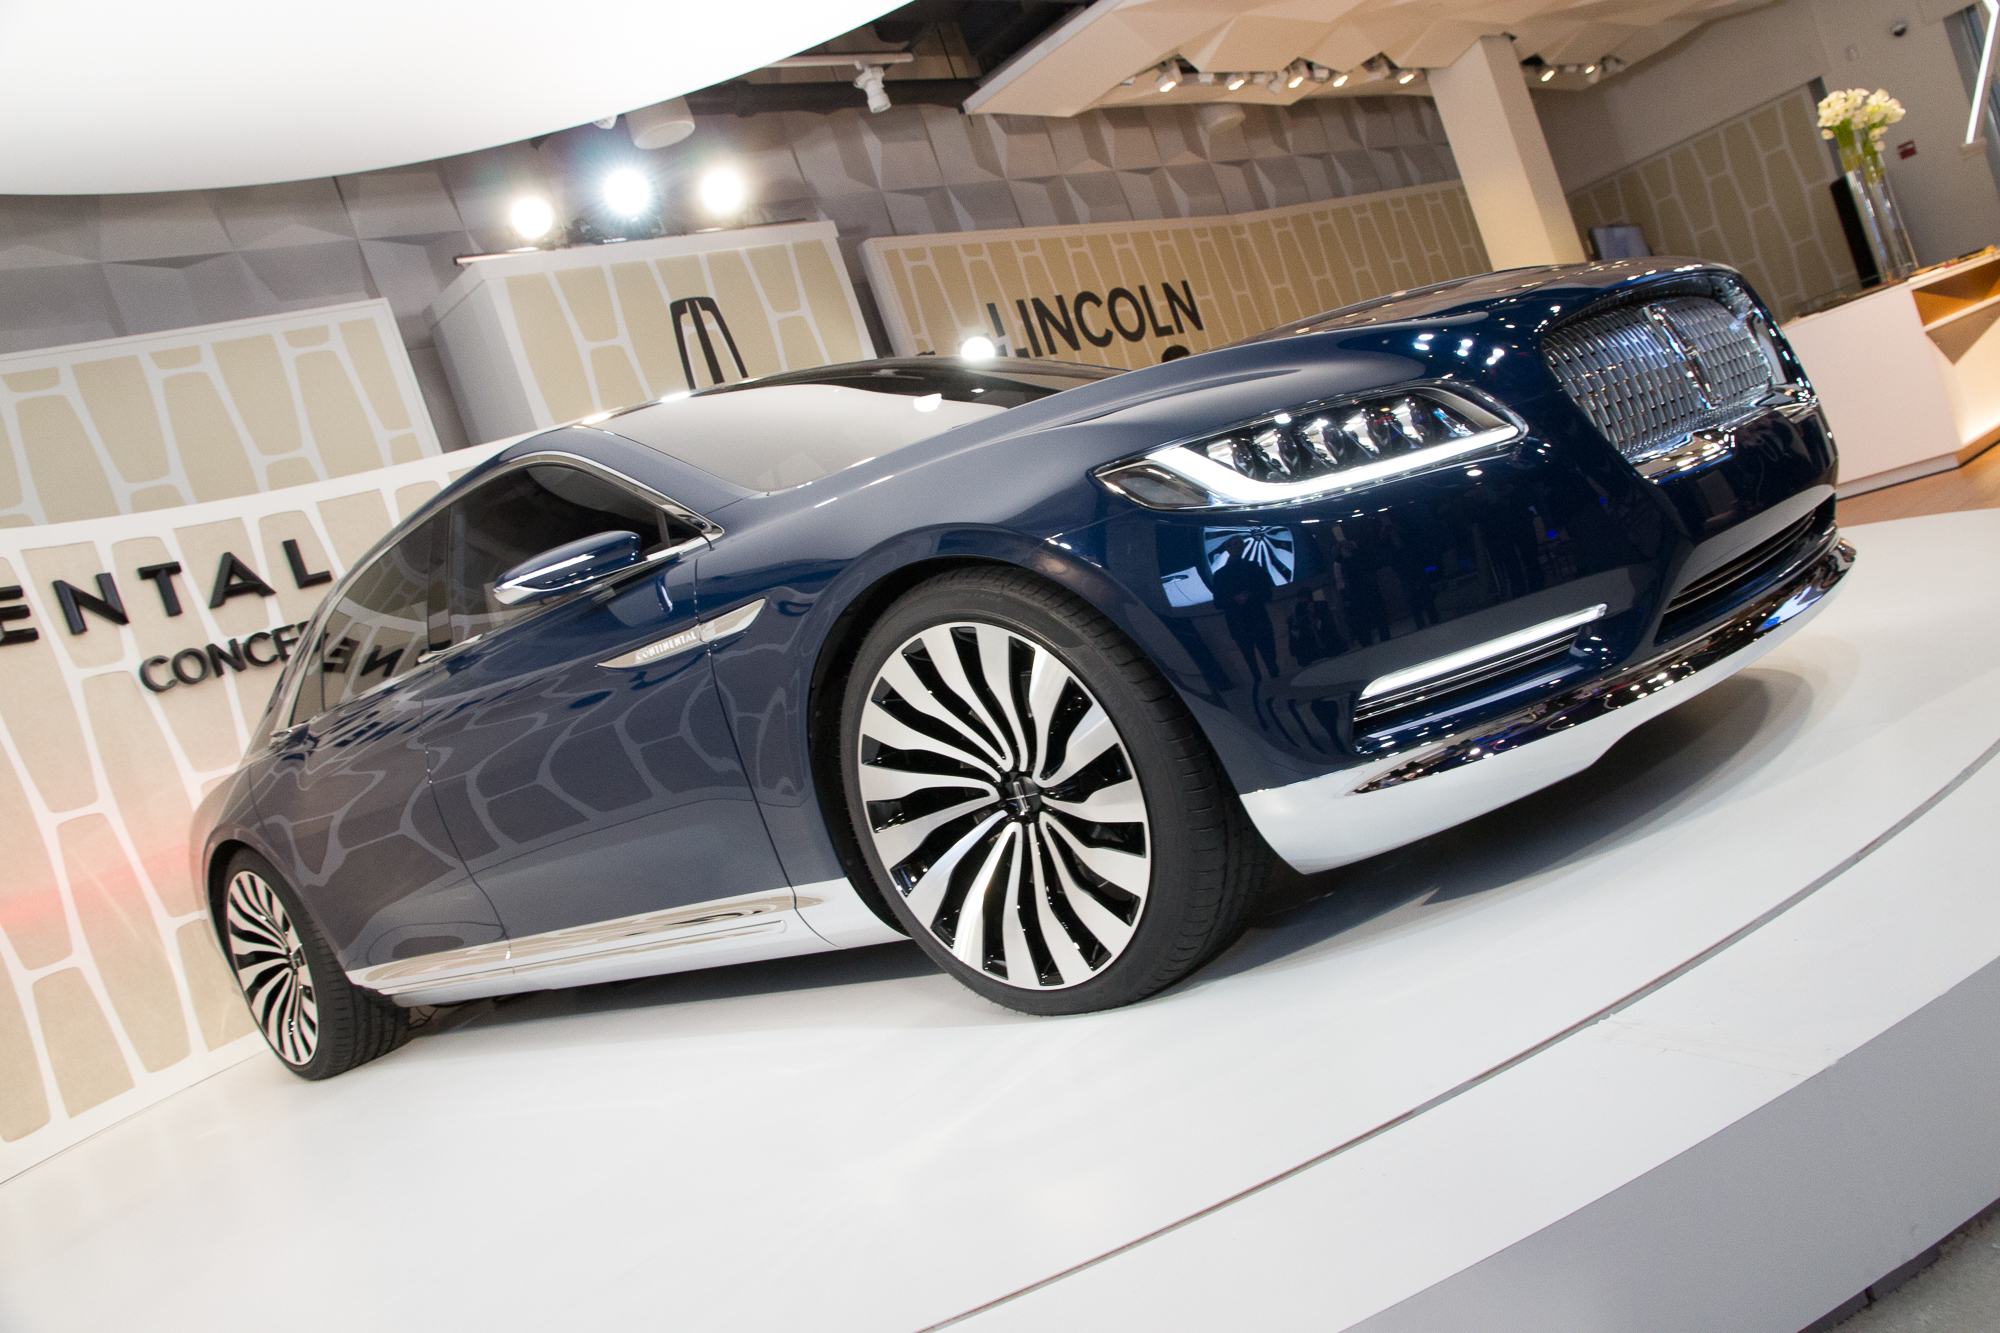 2015 - [Lincoln] Continental Lincoln-continental-concept-unveiling-new-york-city-march-29-2015_100505976_h